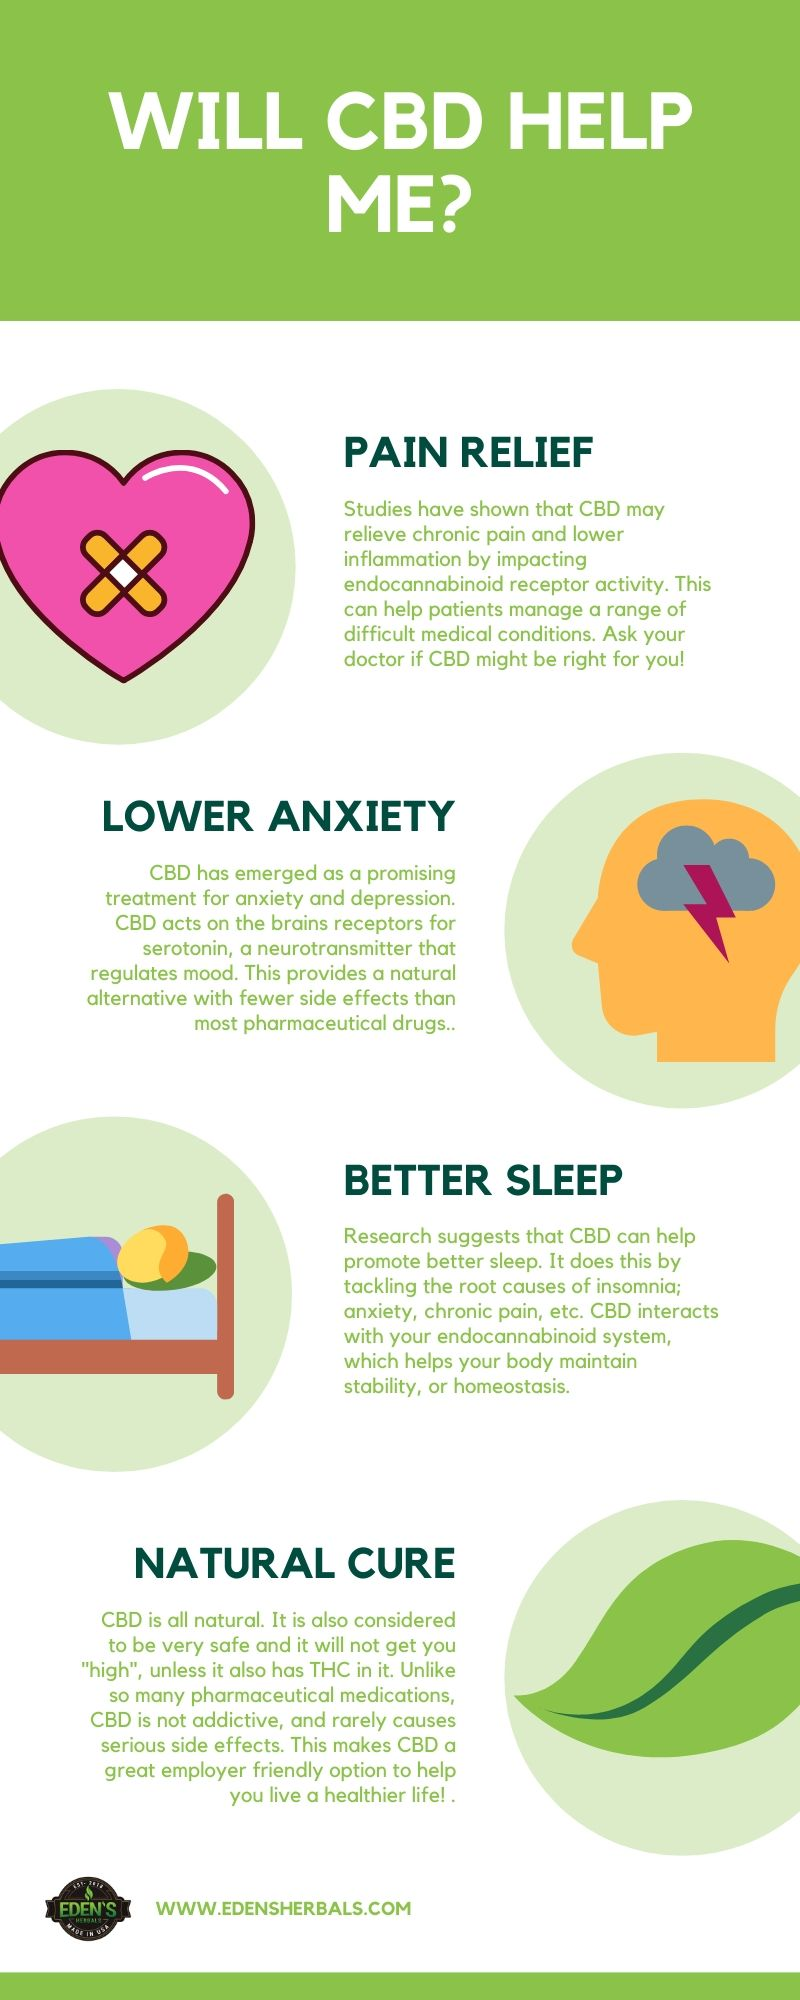 Infographic about the most popular uses for CBD